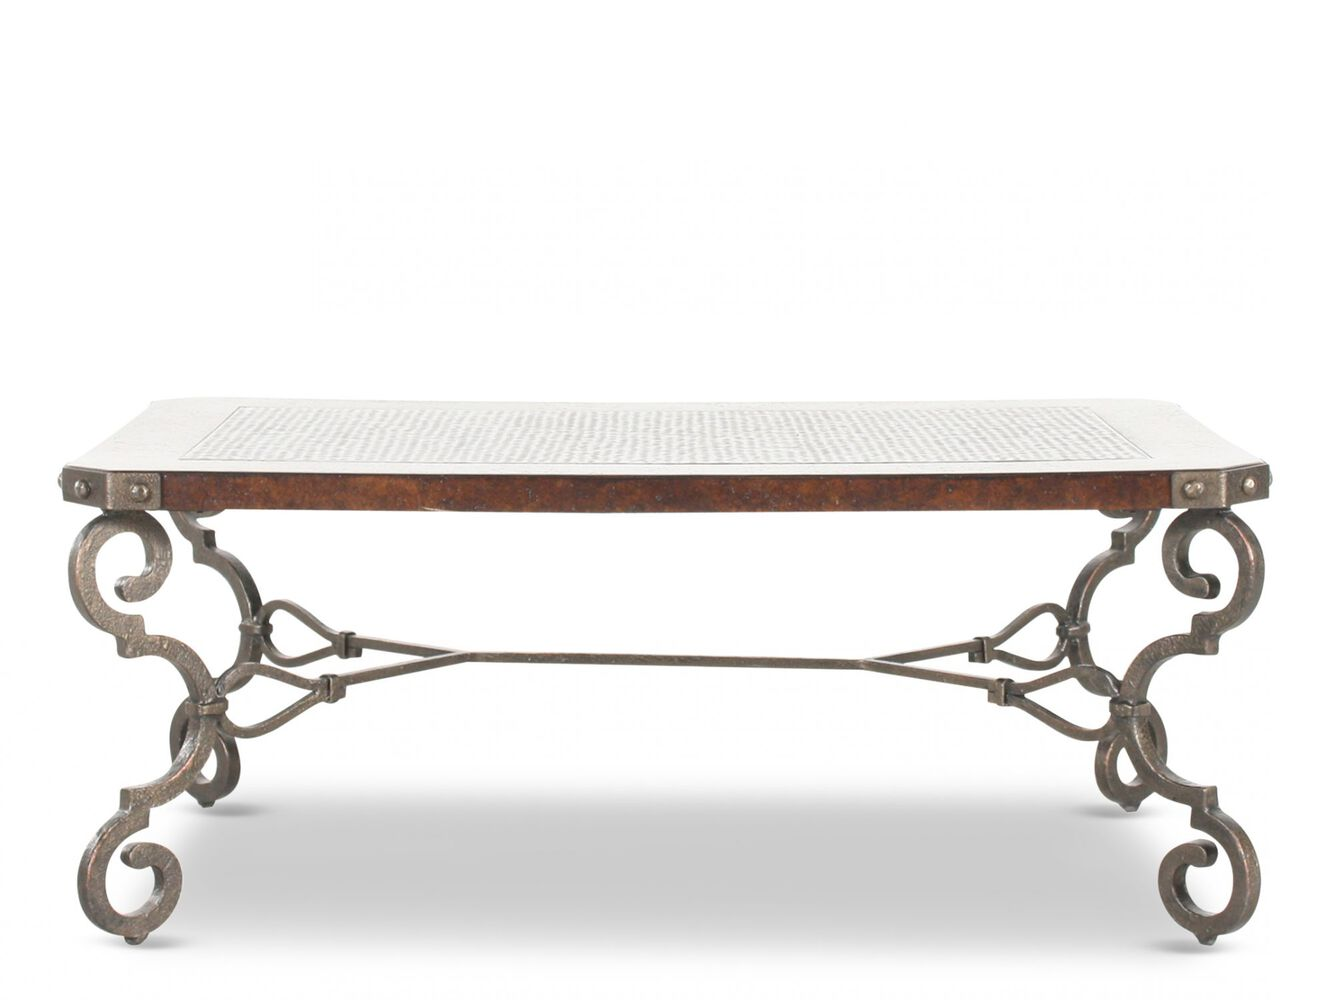 Bernhardt interiors la paz rectangular cocktail table mathis brothers furniture Bernhardt coffee tables